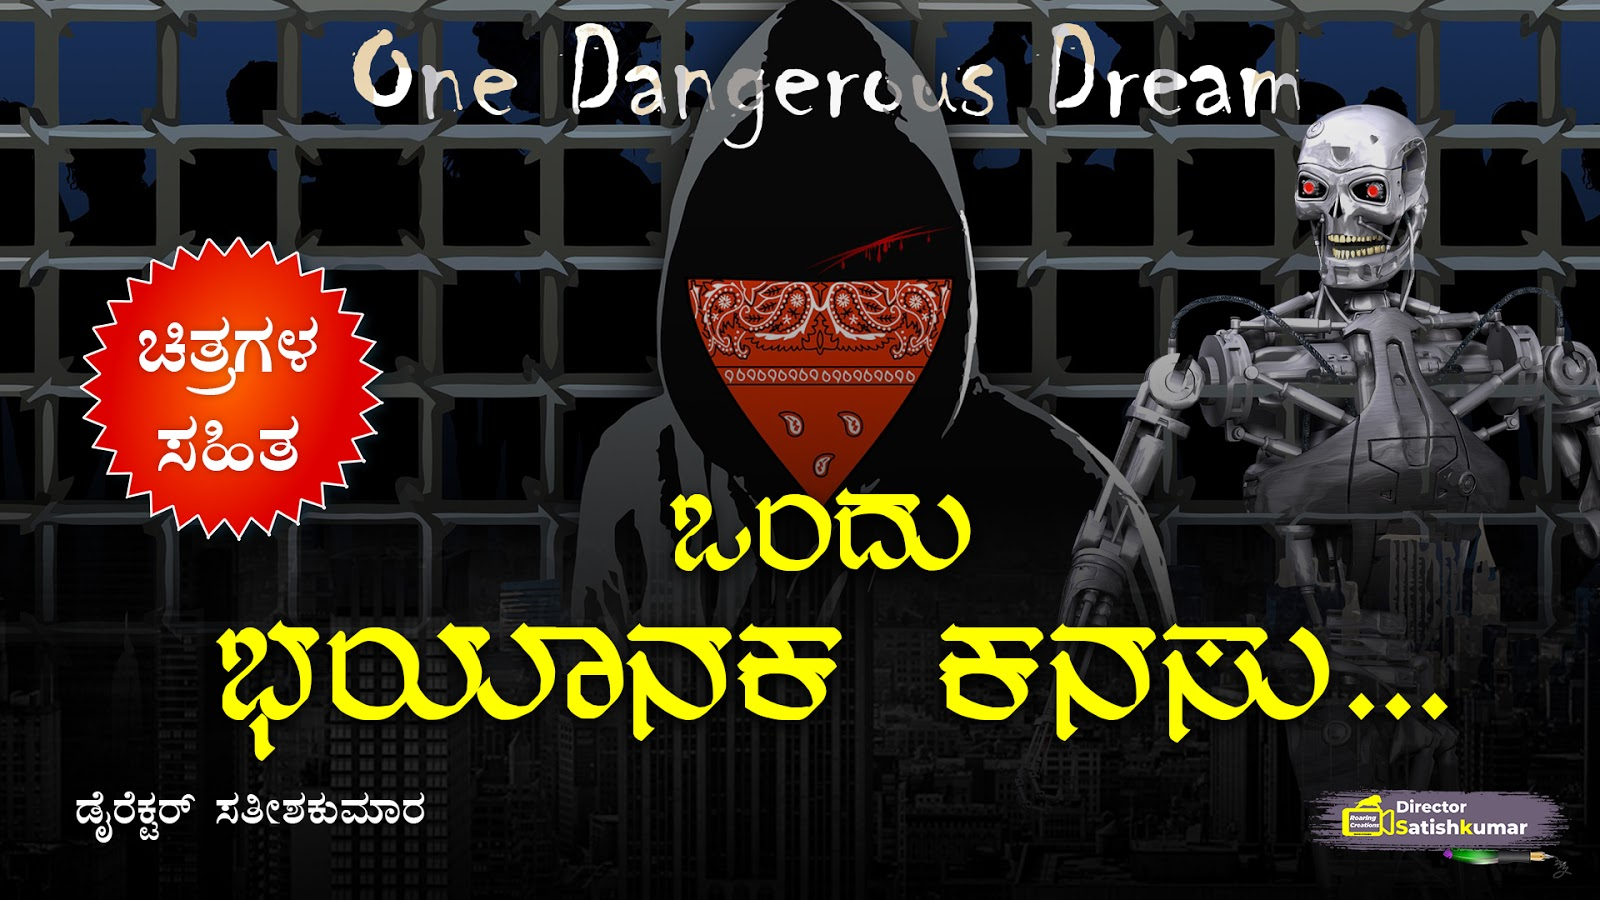 ಒಂದು ಭಯಾನಕ ಕನಸು... One Dangerous Dream - Kannada Social Message Story